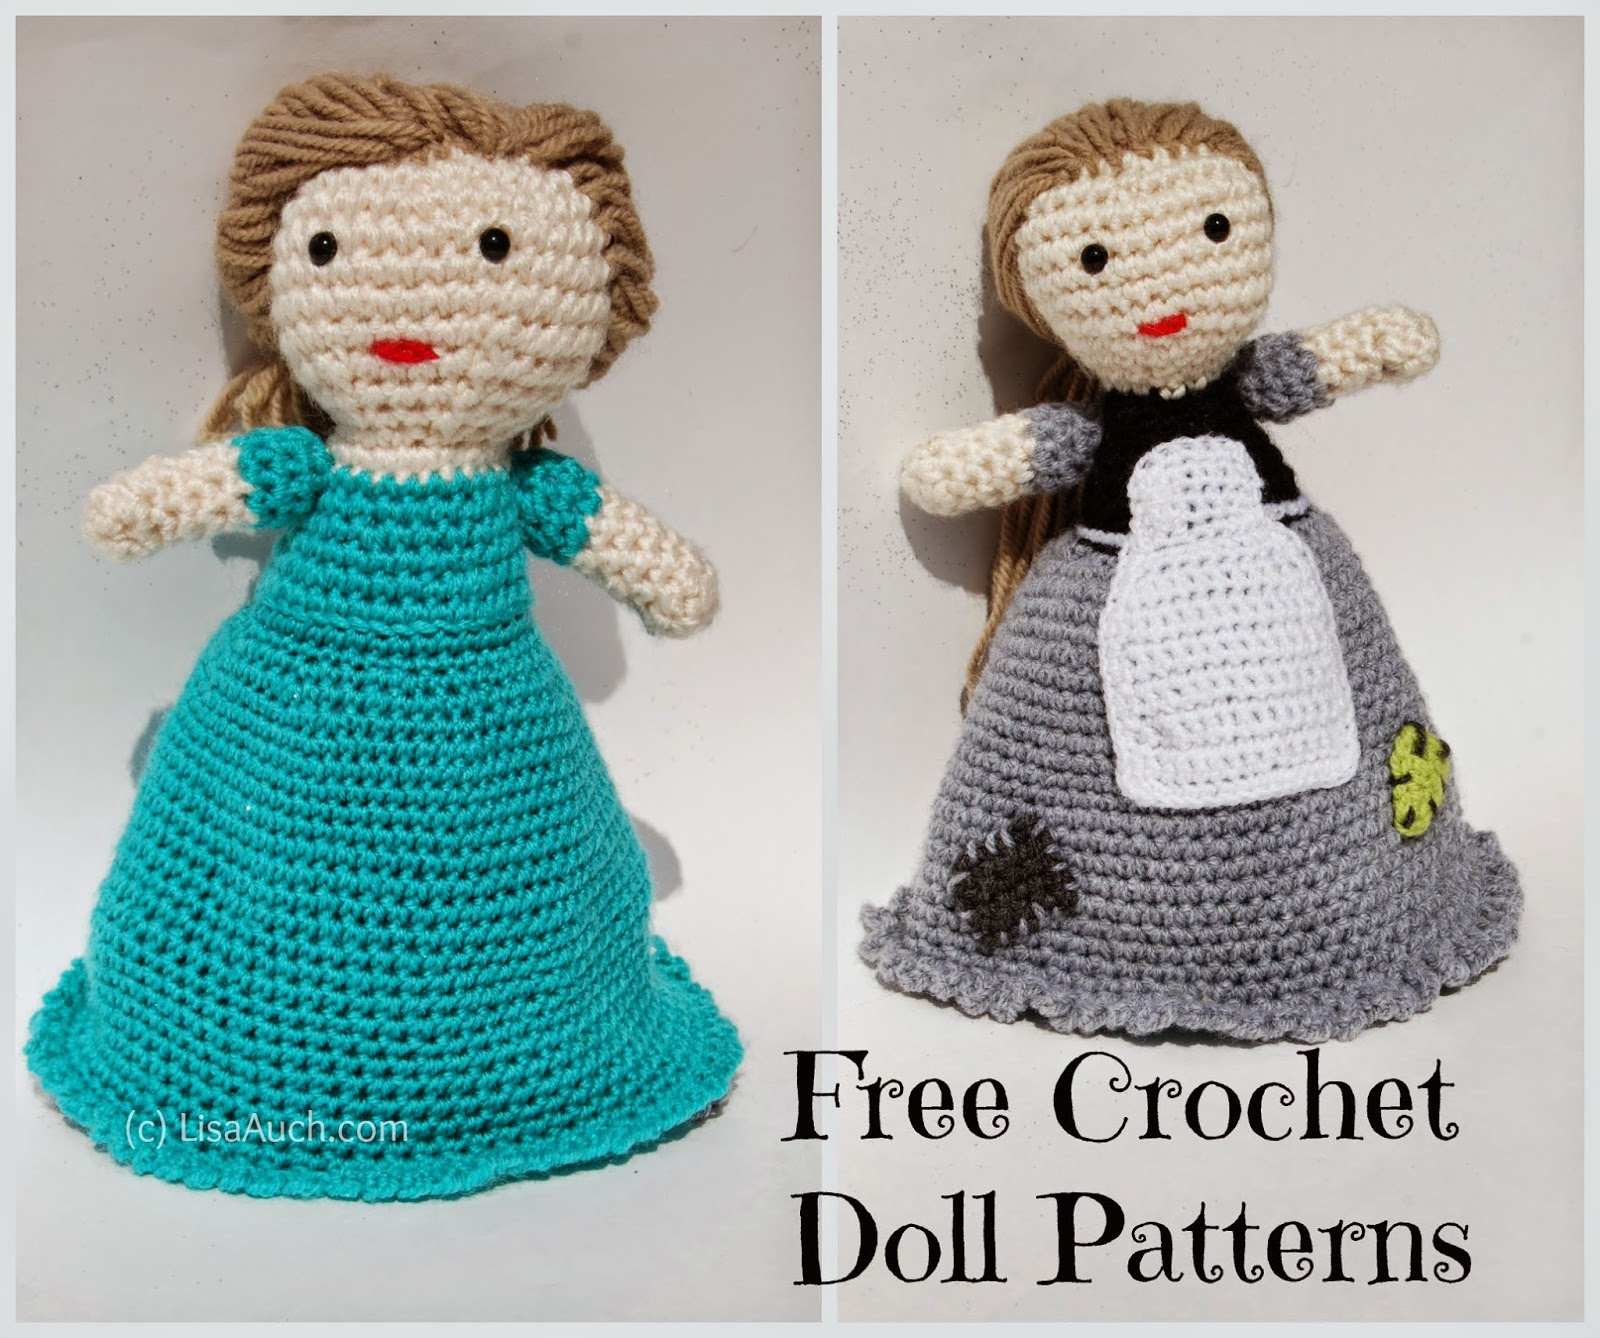 Free Crochet Amigurumi Doll Pattern (A Basic Crochet Doll Pattern ...